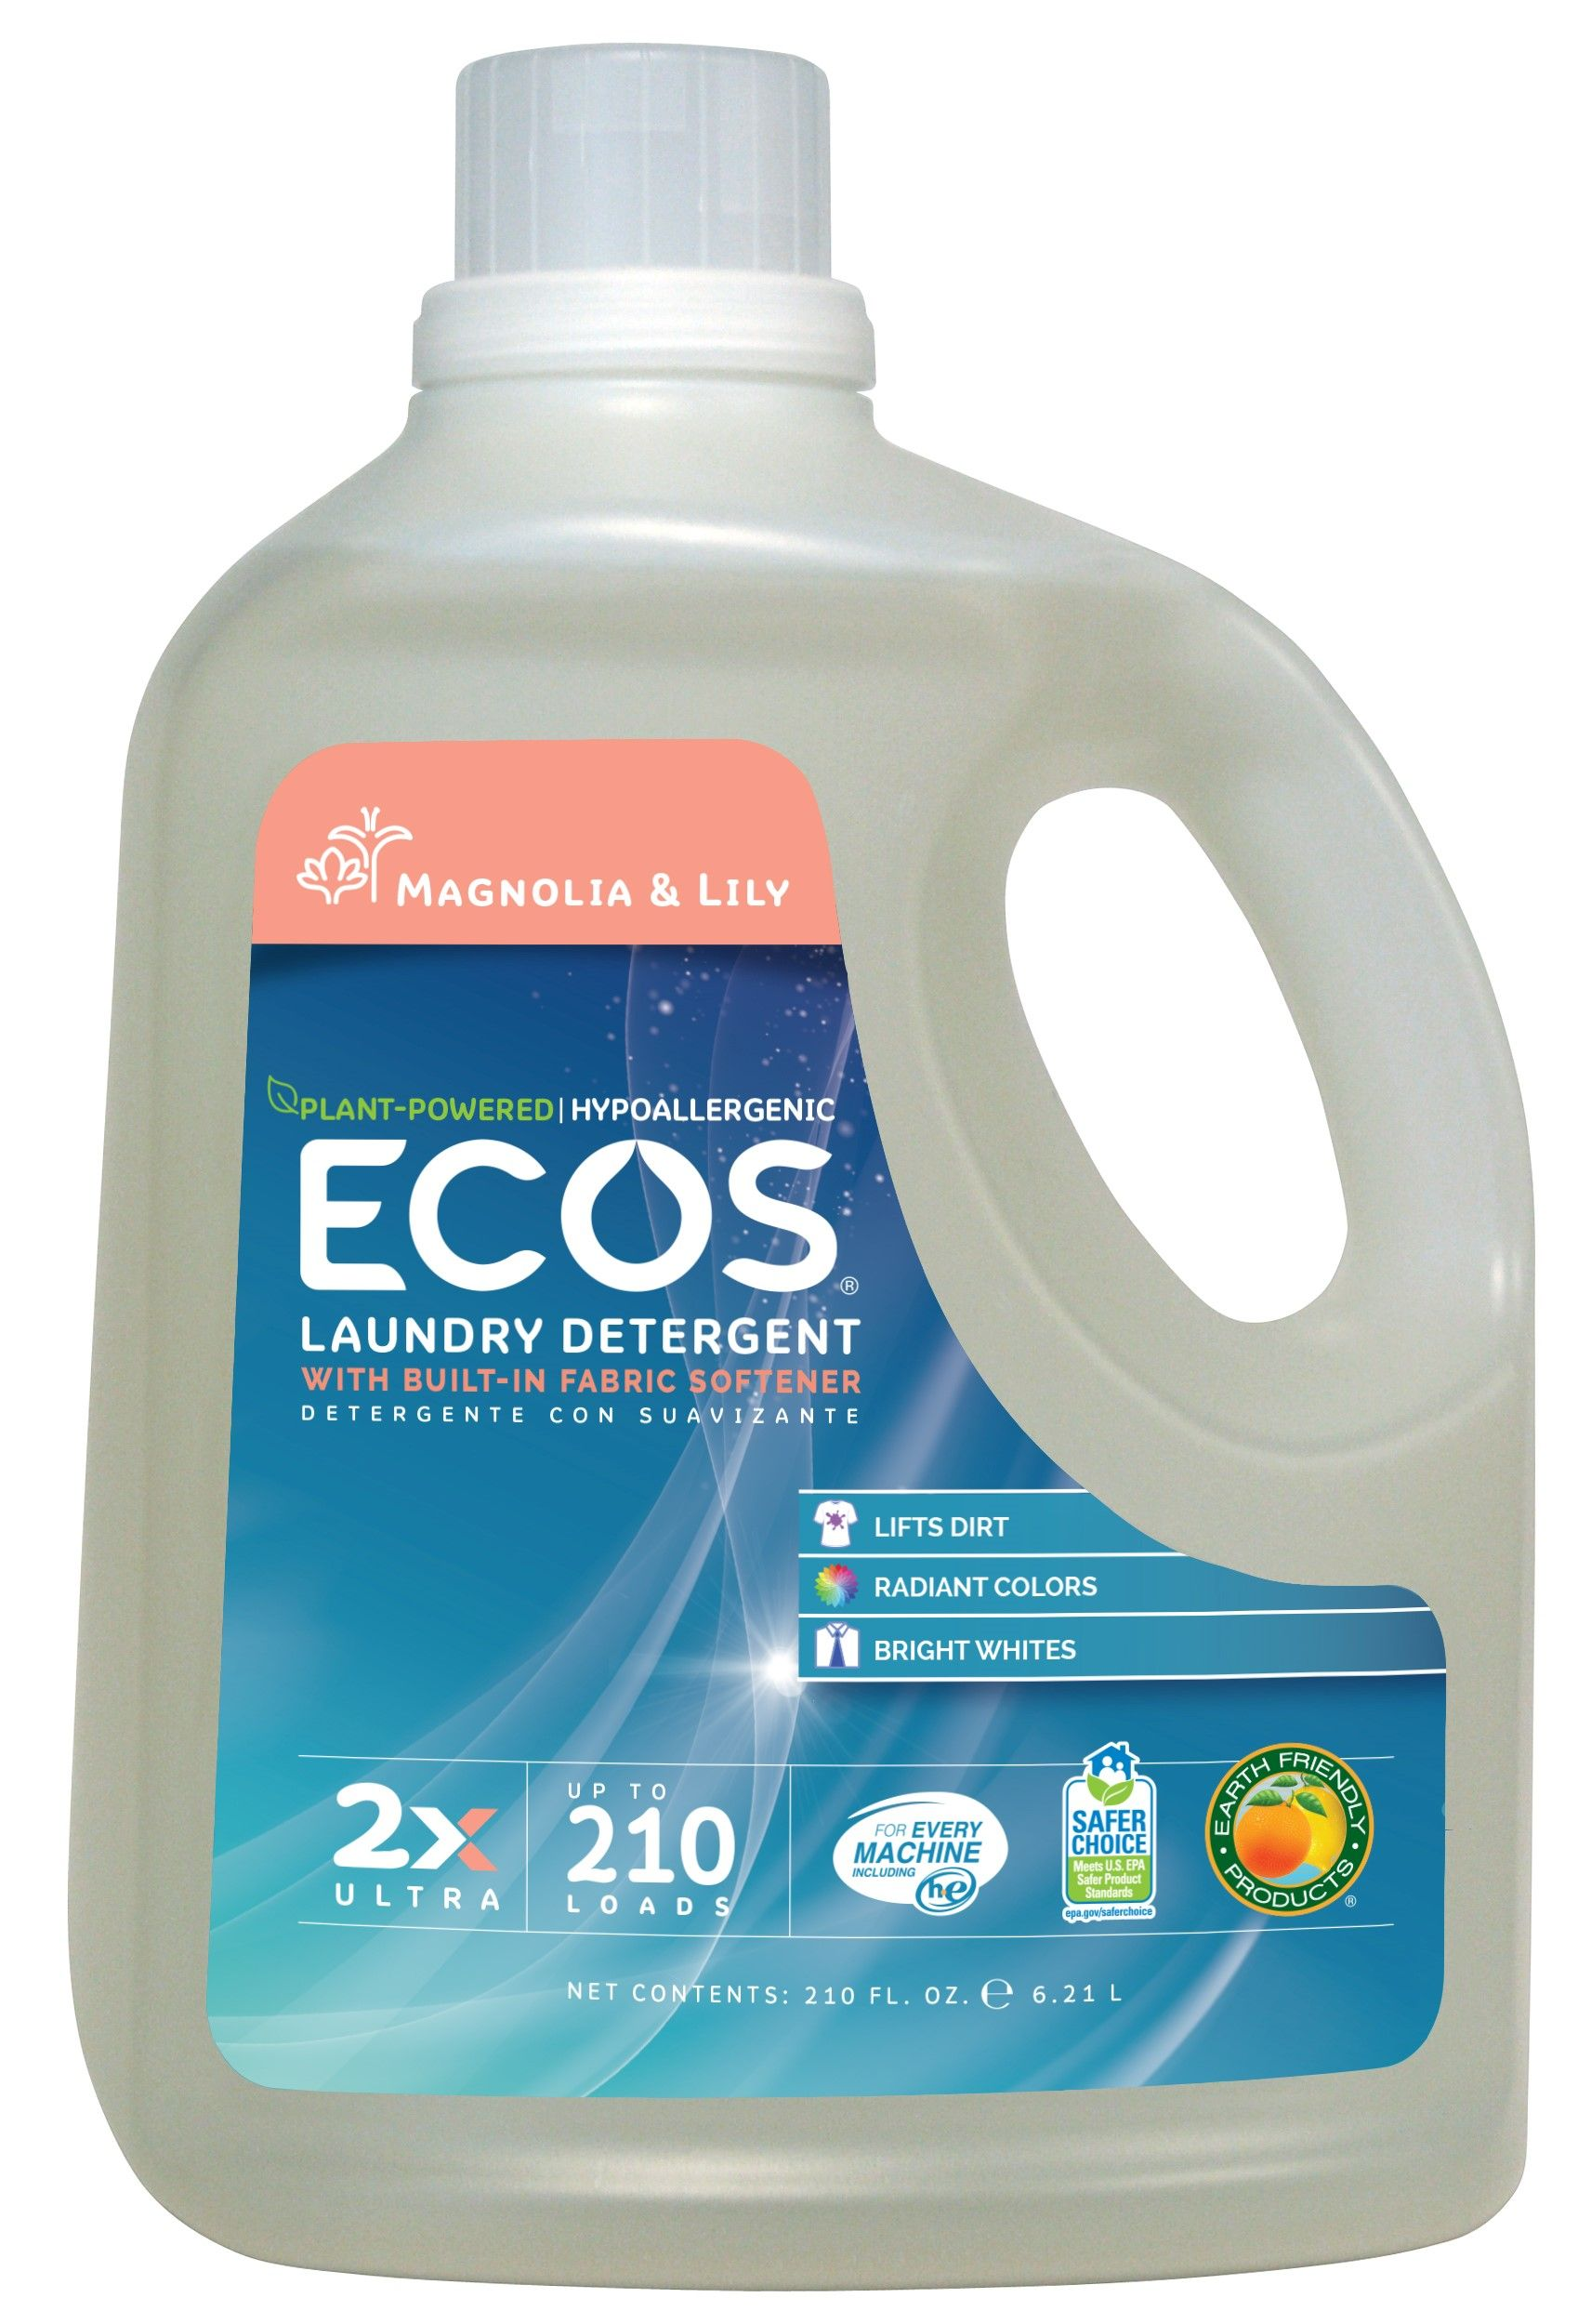 Stock Up On Ecos Laundry Detergent For 8 49 At Costco From Now